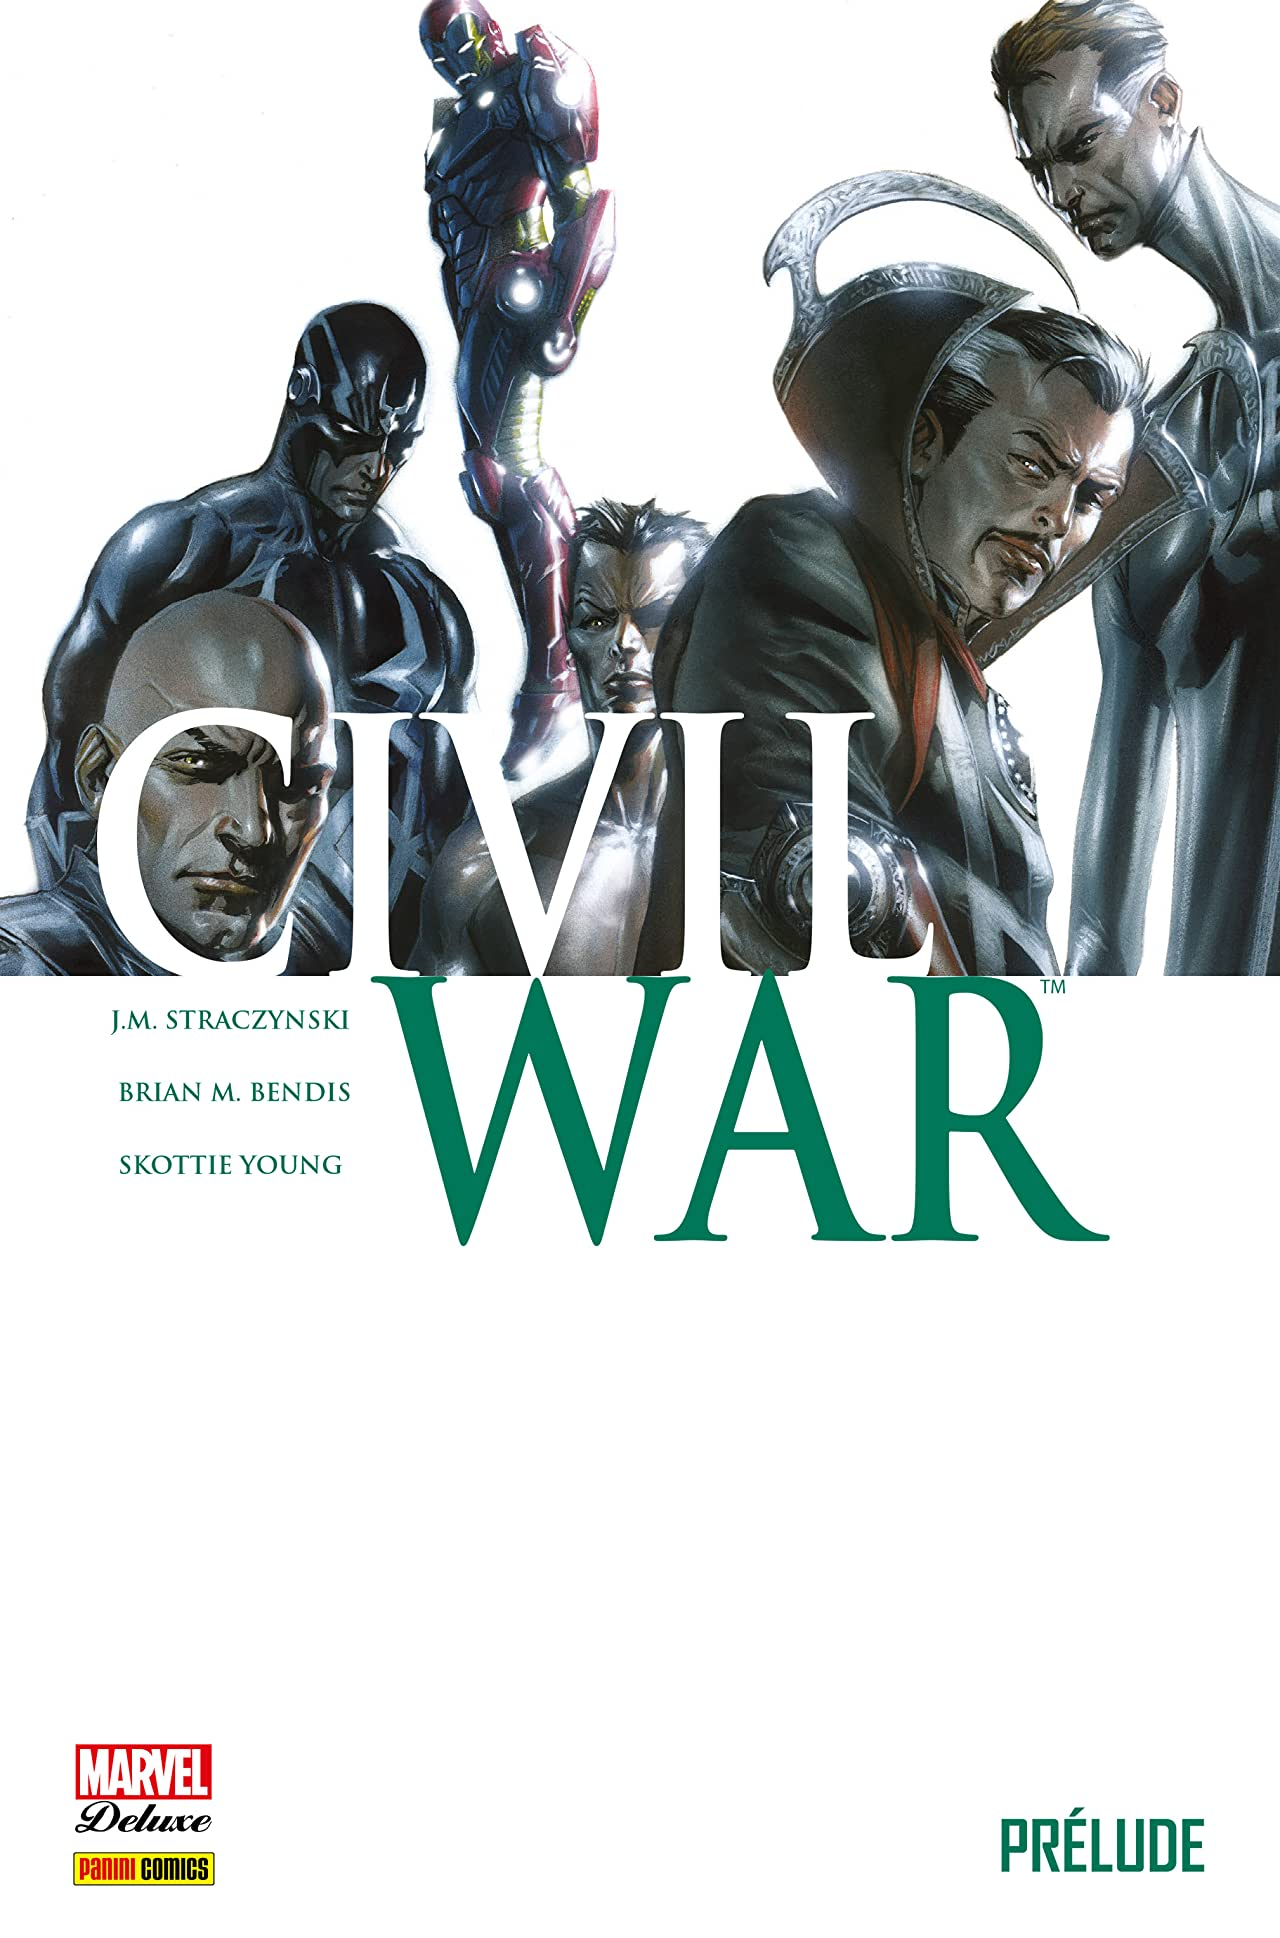 Civil War: Prélude